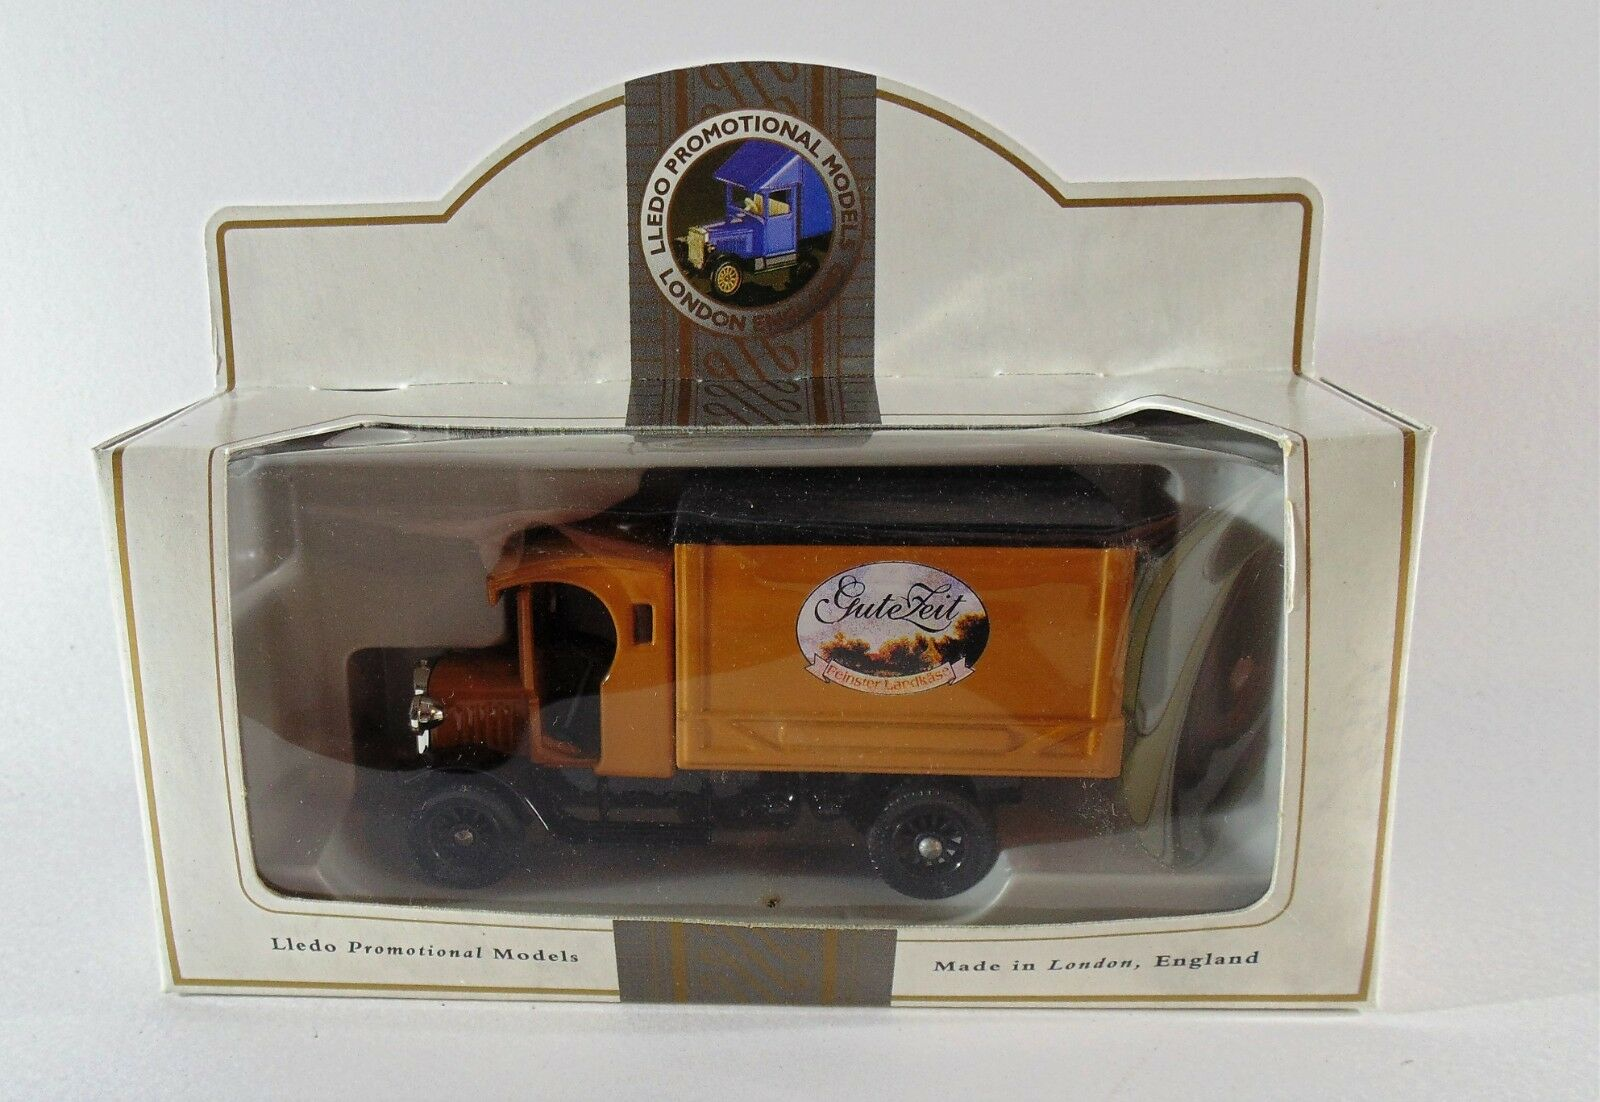 LLEDO Promotional Models Gute Feit Feinster Landkase Rare Diecast Boxed Vehicle